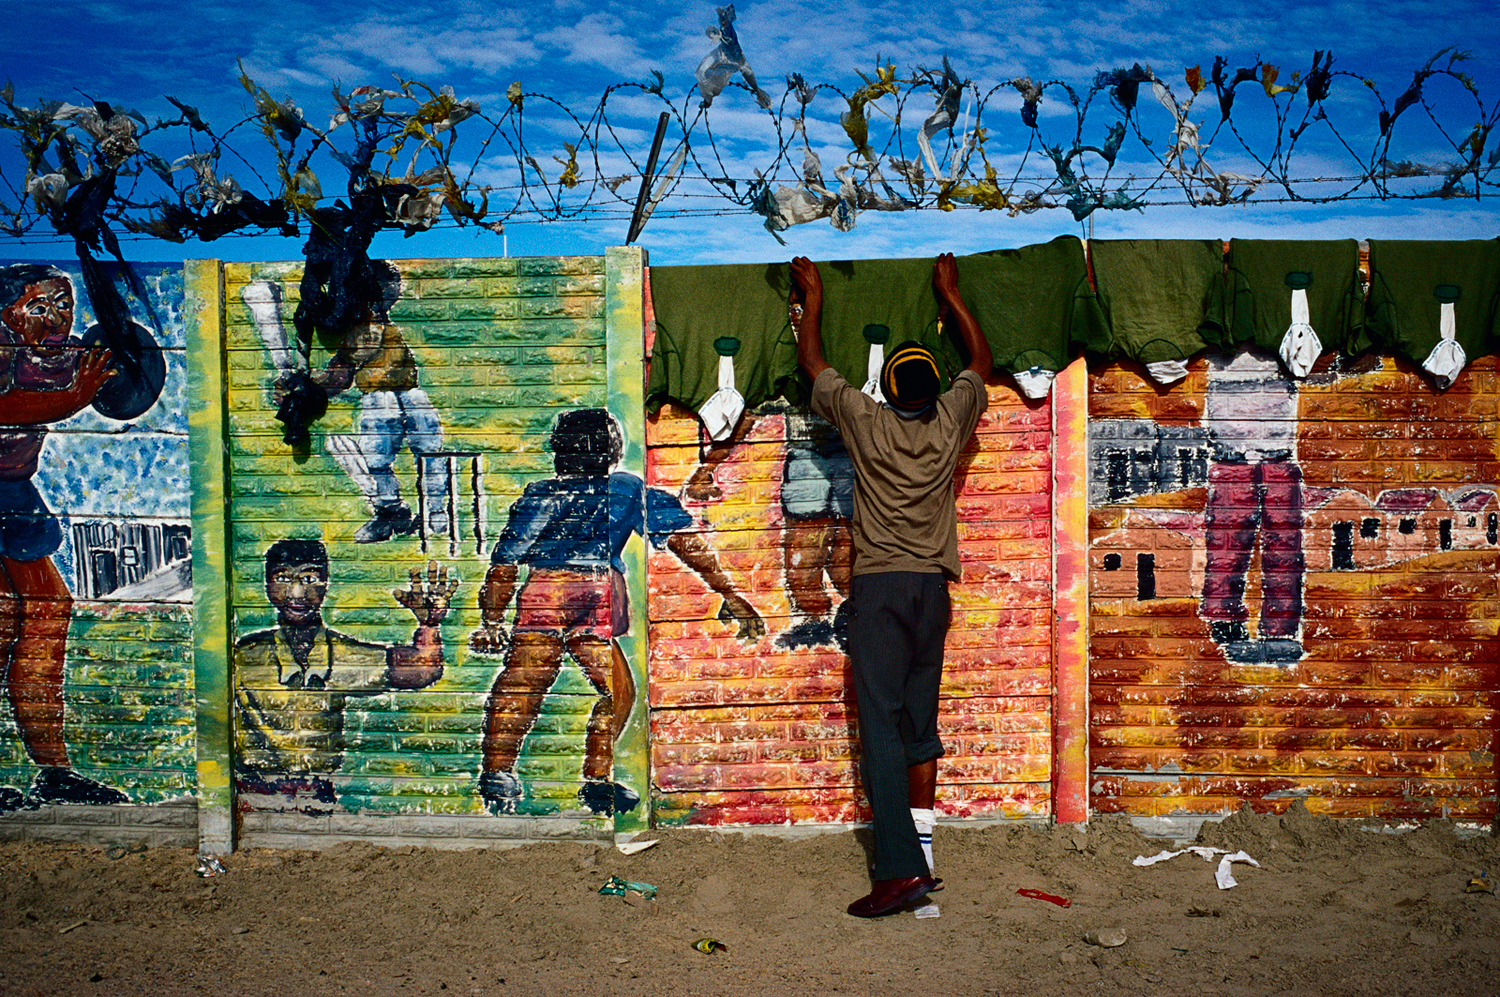 A man hangs rugby shirts that have been laundered on a colorful wall with graffiti in Site C Khayelitsha, a township about 35 kilometers outside Cape Town, South Africa, July 2001.